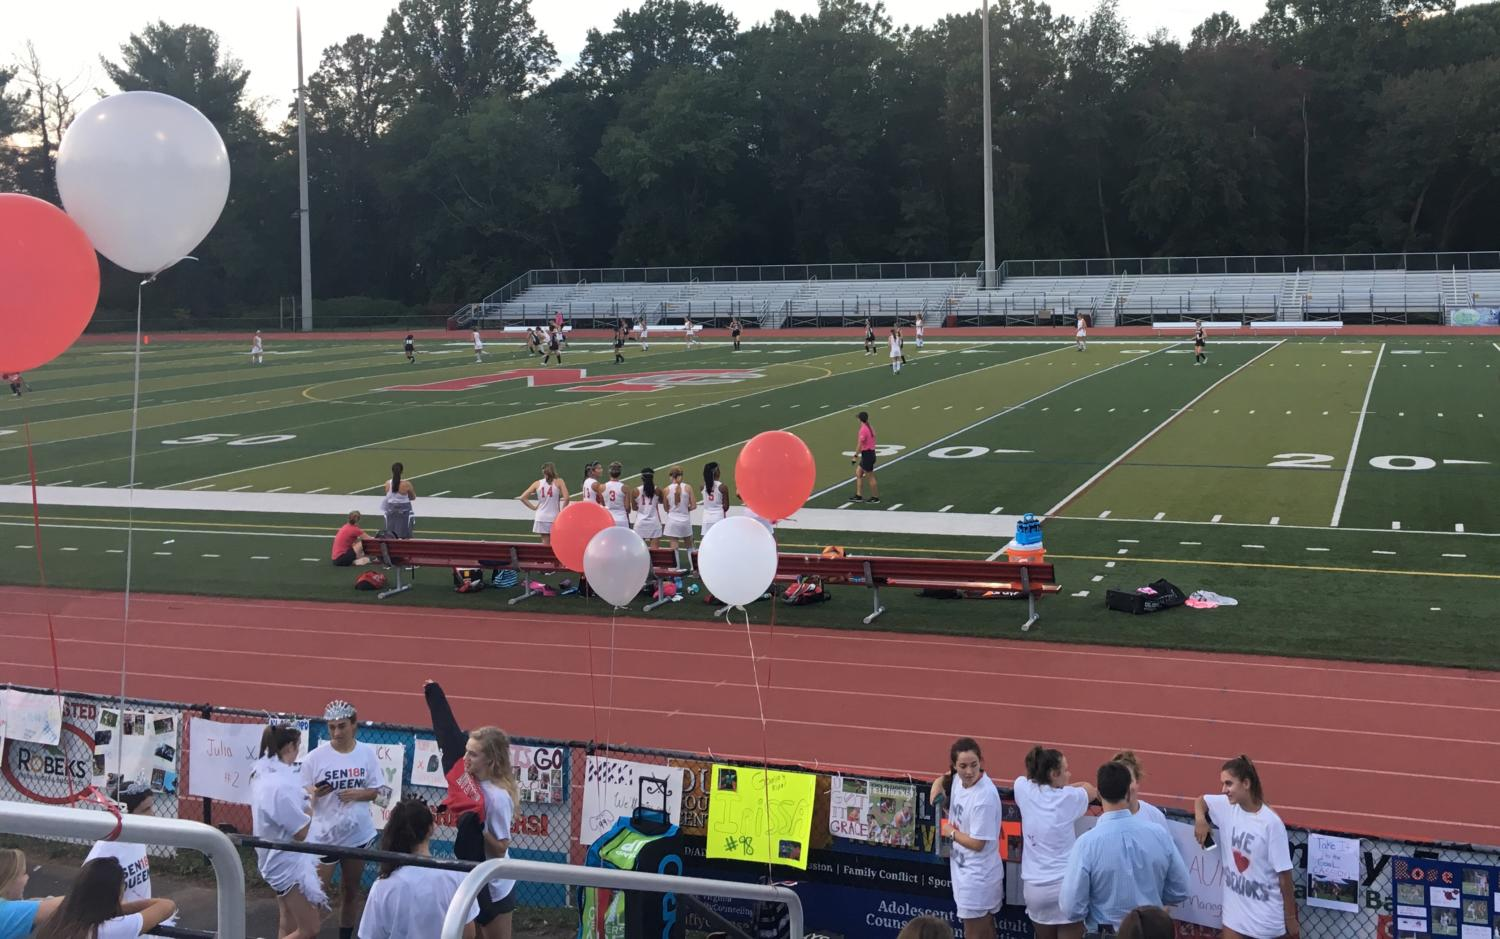 McLean field hockey celebrates a great season with red and white balloons on Senior Night on Oct. 10. (Photo by Emily Jackson)